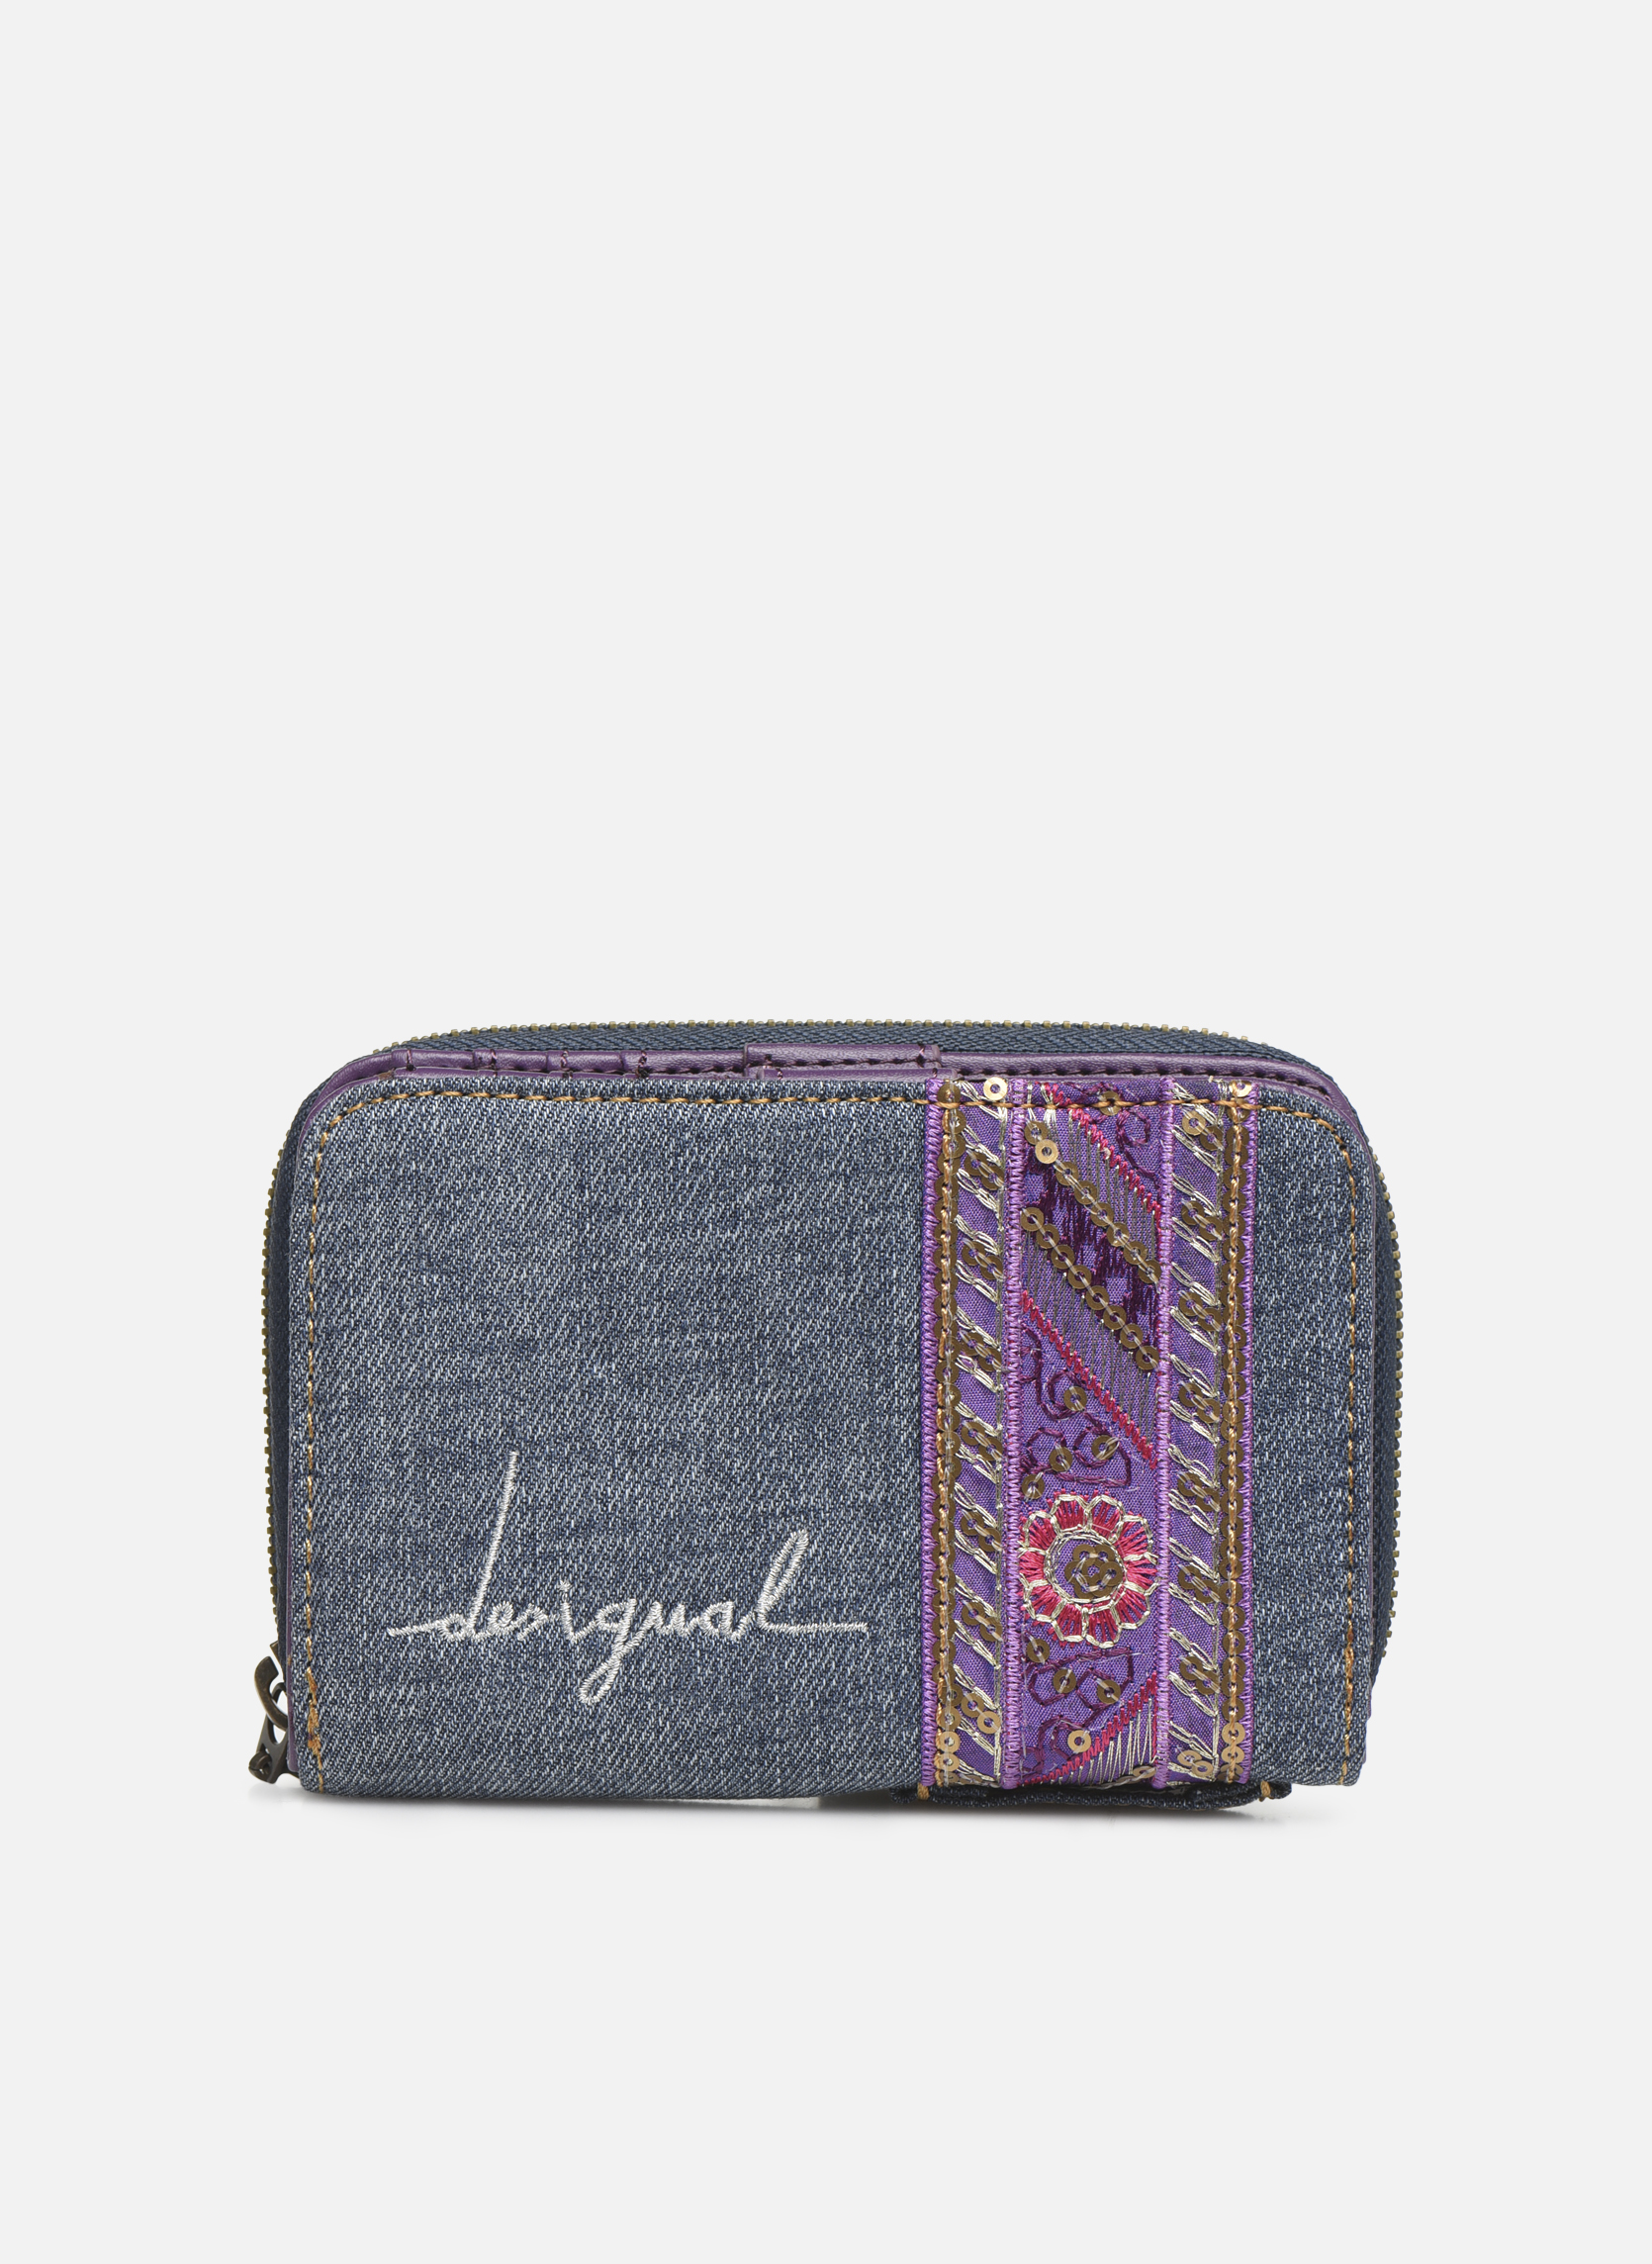 MAGNETIC ETHNIC DELUXE Portefeuille by Desigual - desigual - sarenza.it